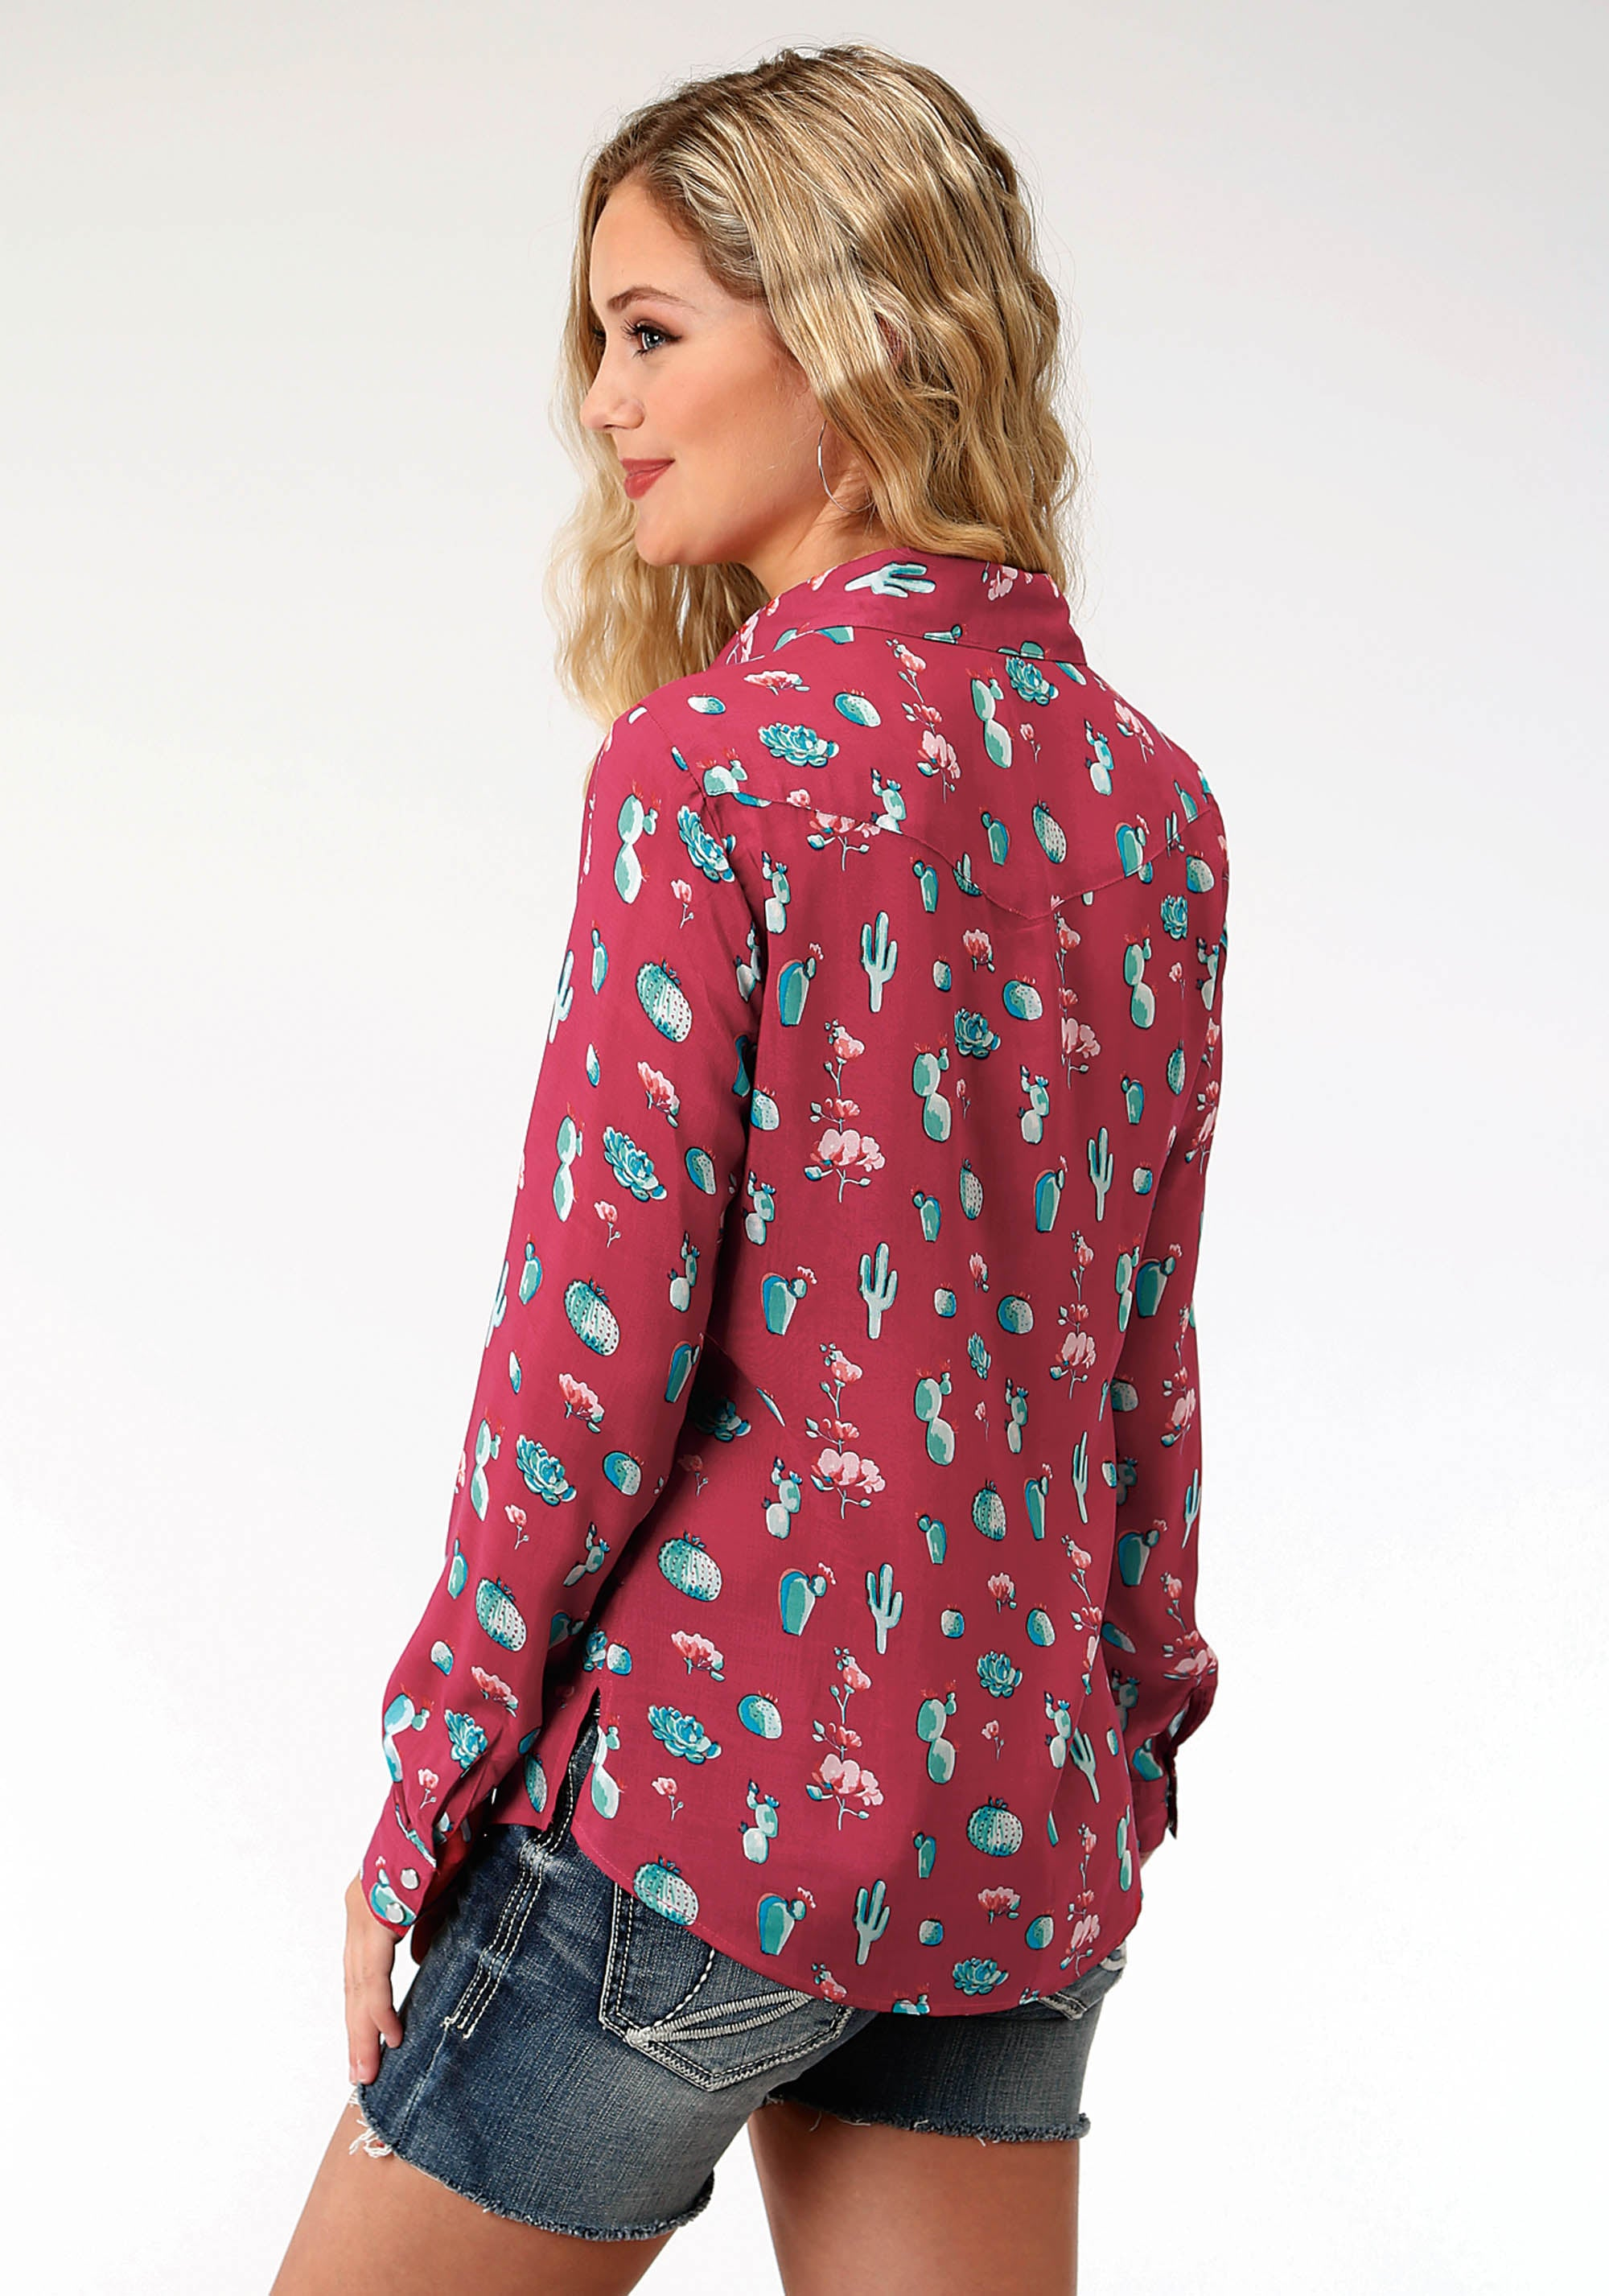 ROPER WOMENS RED 7554 PRINTED RAYON LS WESTERN SHIRT FIVE STAR COLLECTION- SUMMER III LONG SLEEVE